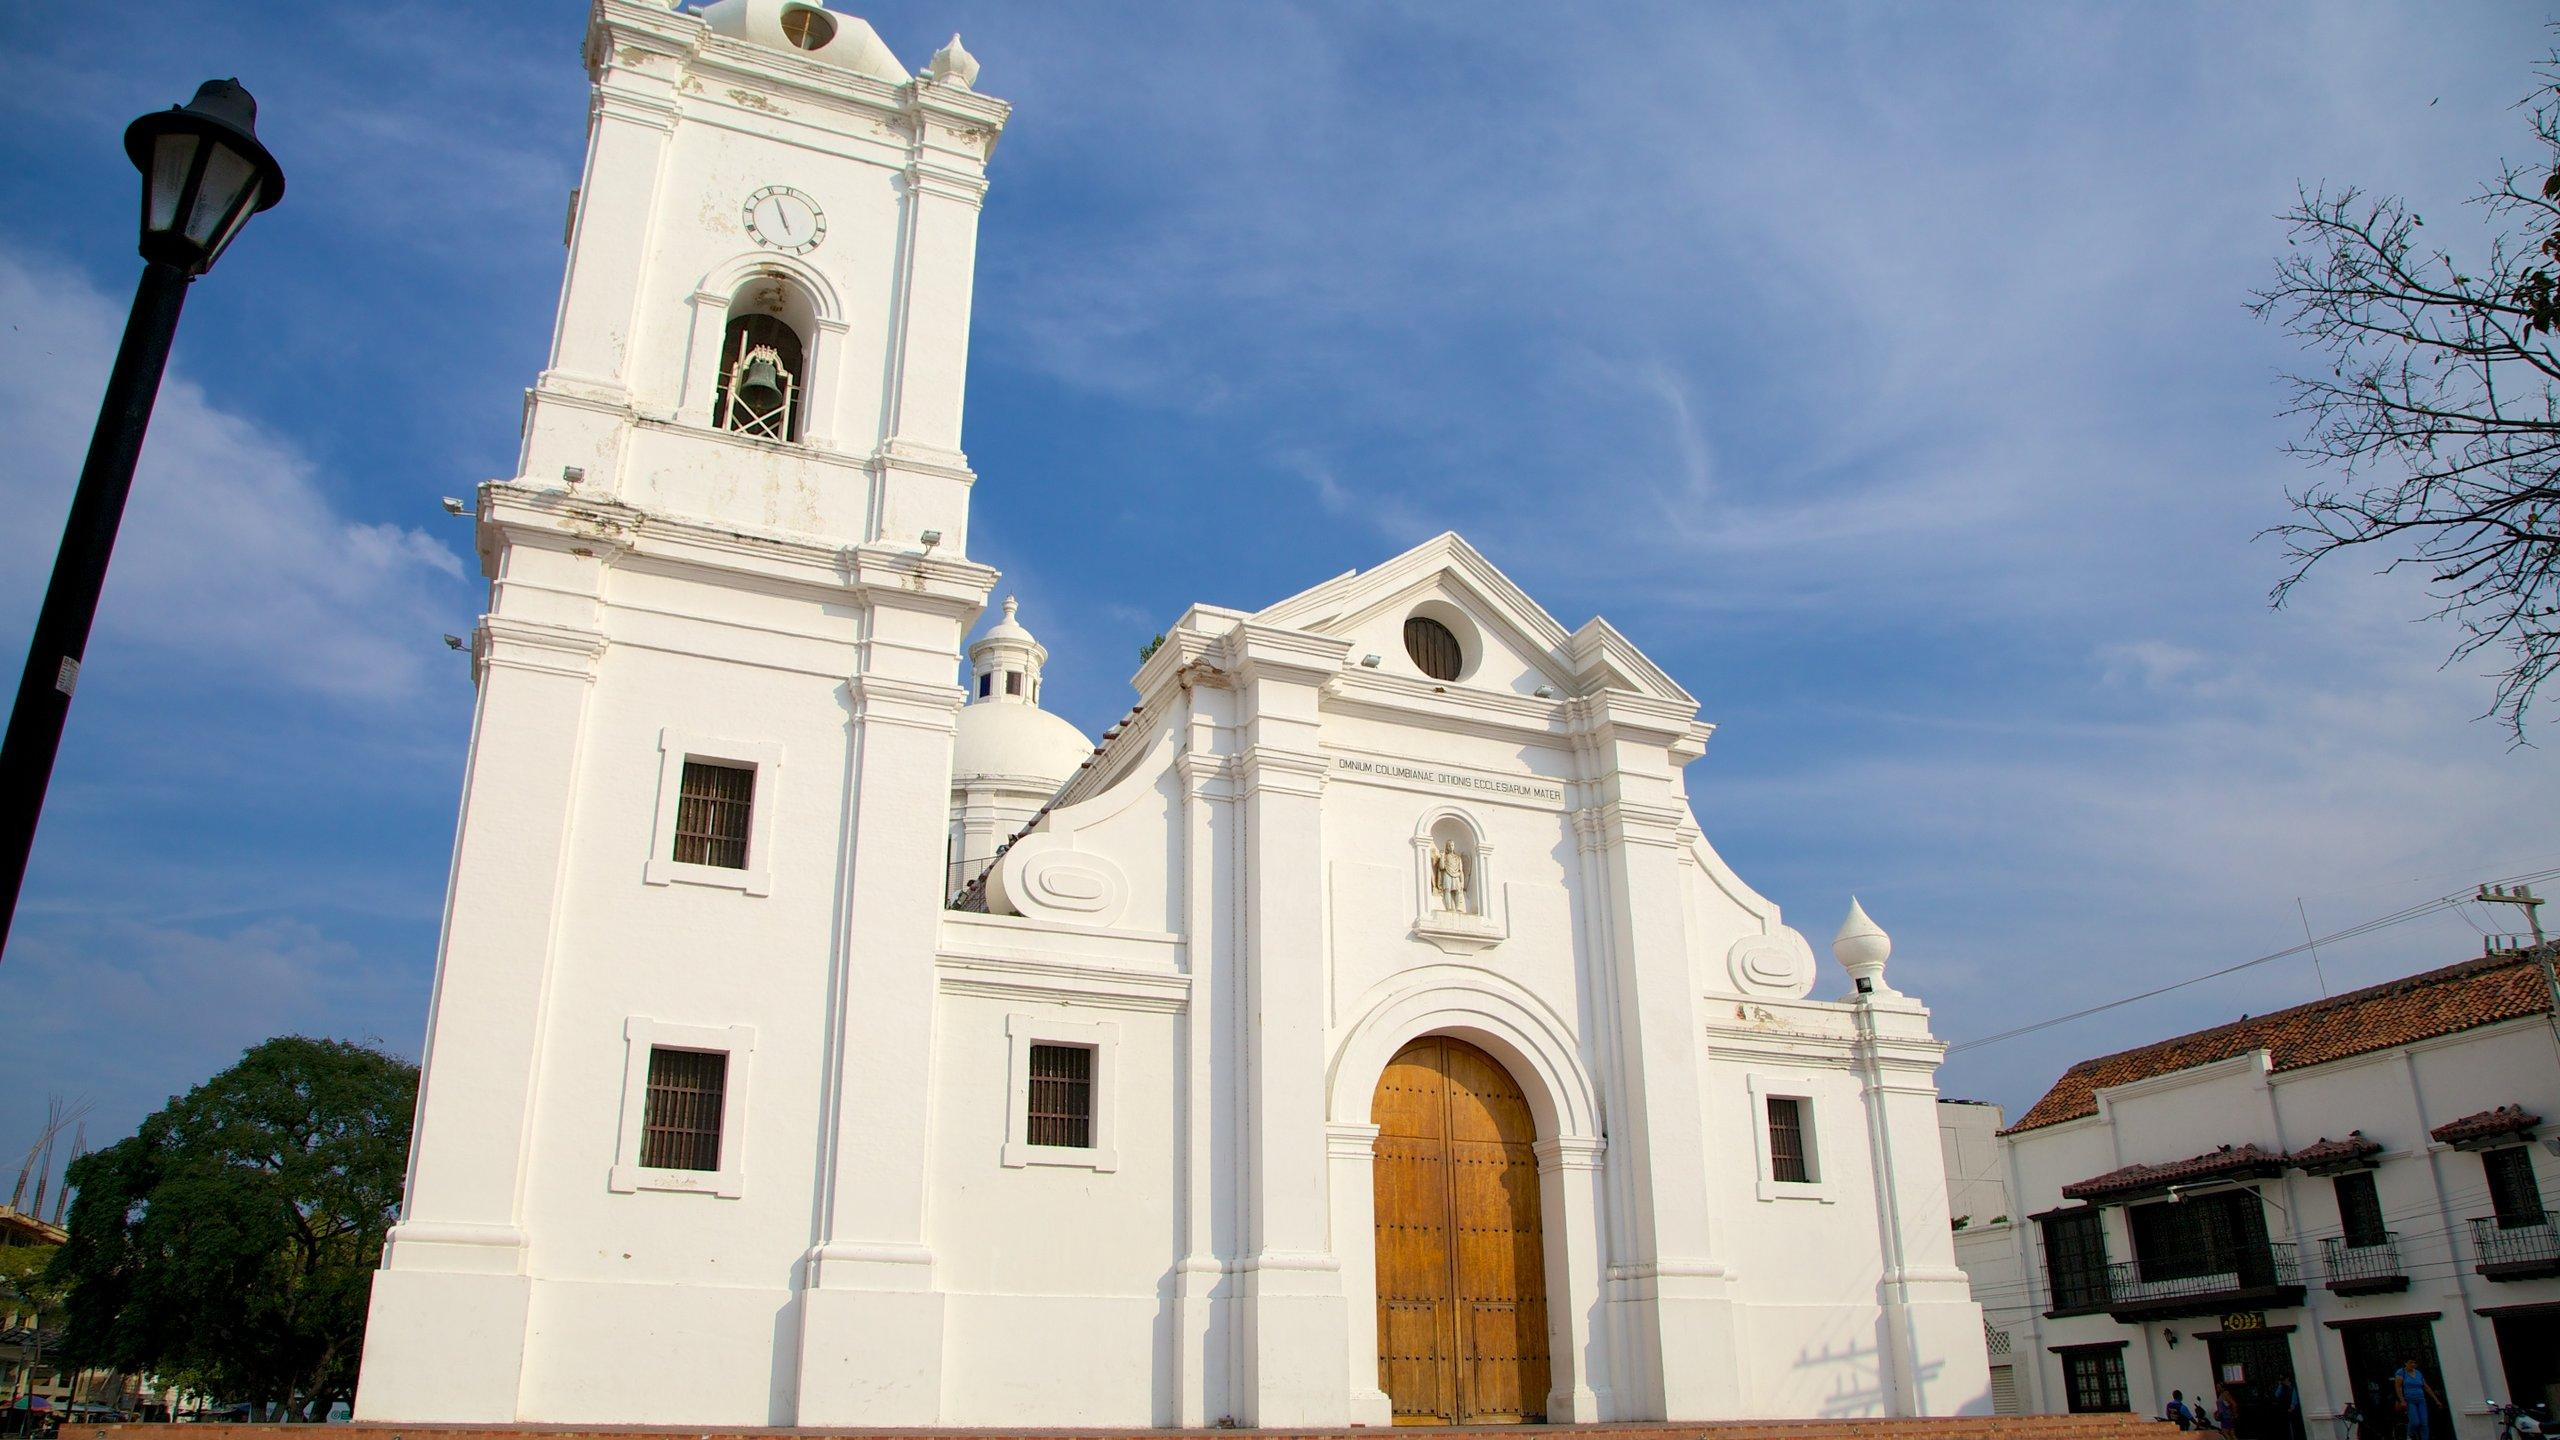 Top 10 Historic Hotels in Santa Marta Full of Heritage $19